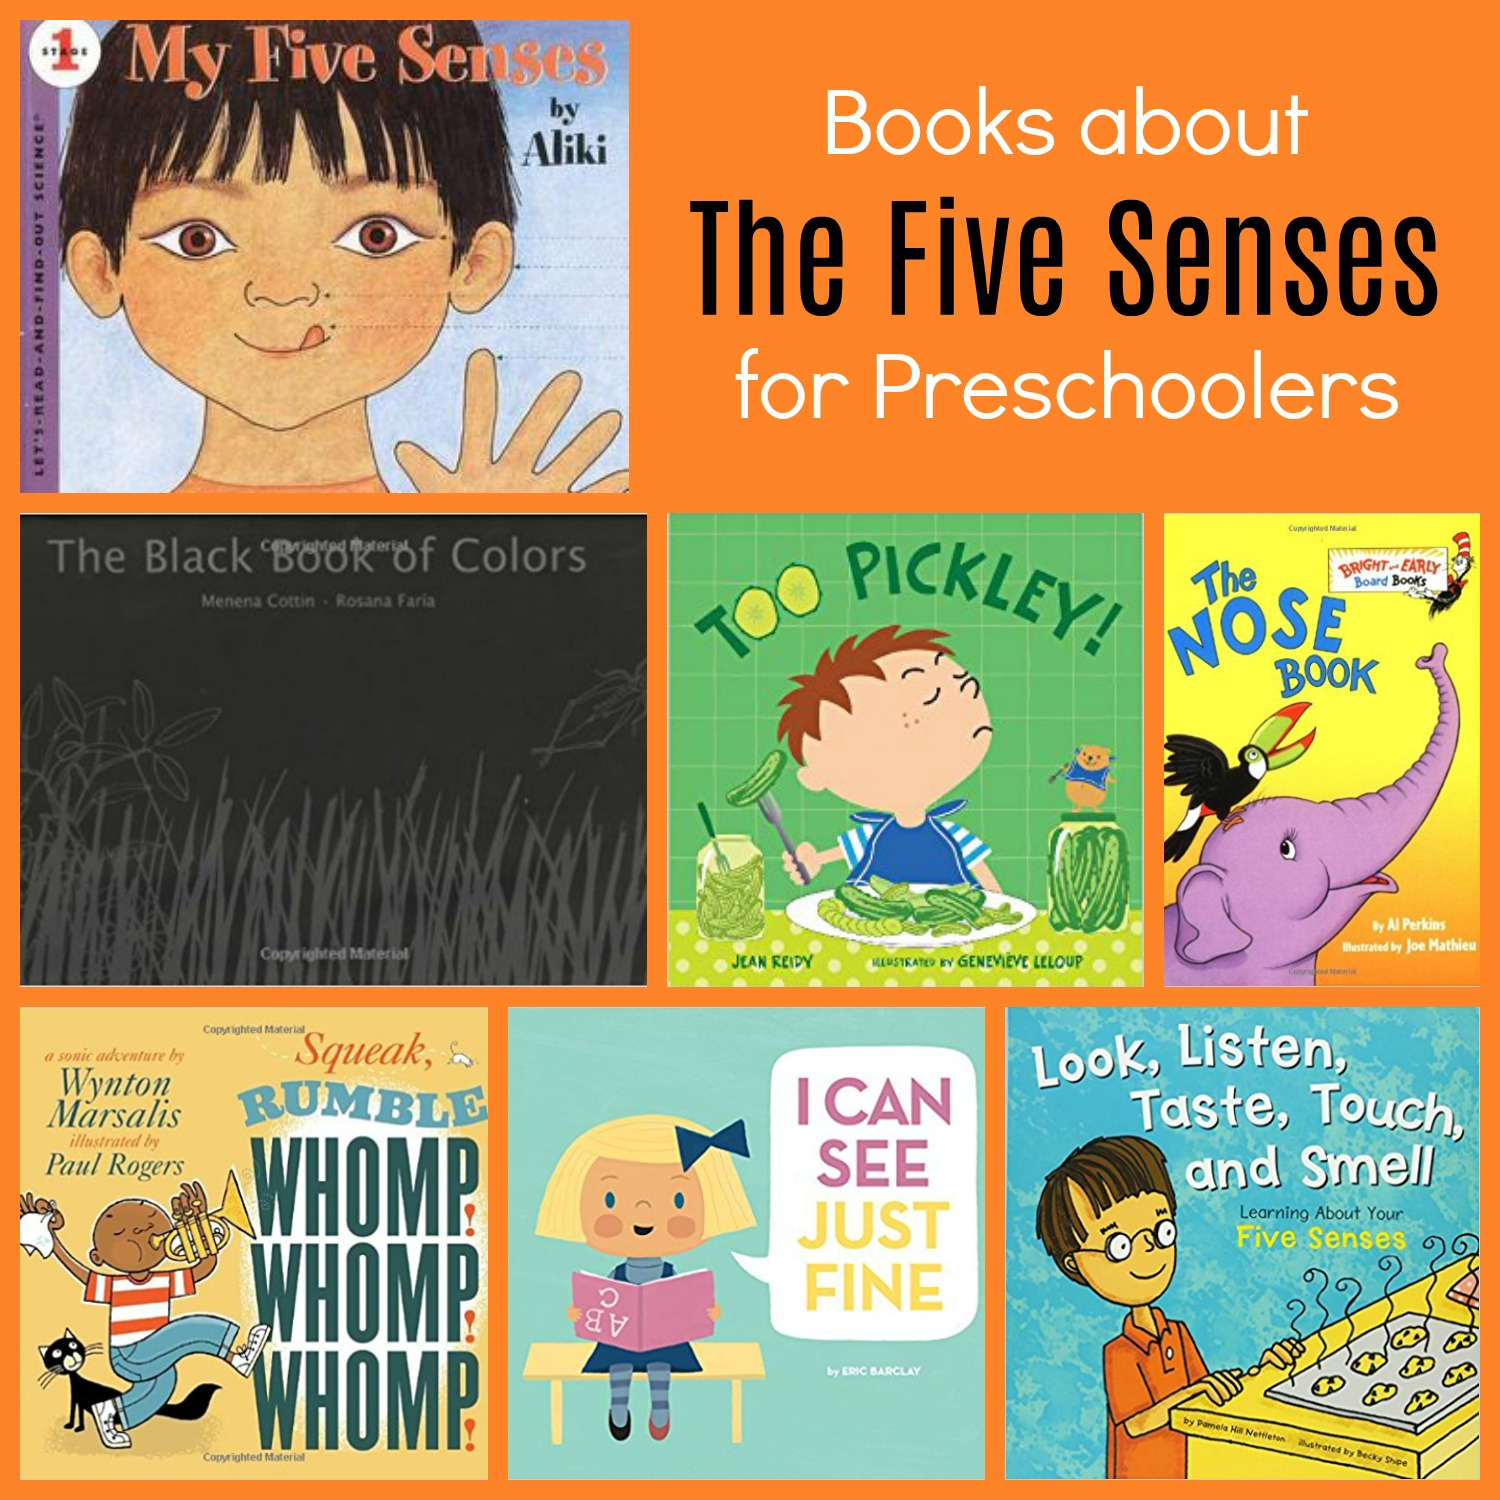 Books about the 5 Senses for Preschool